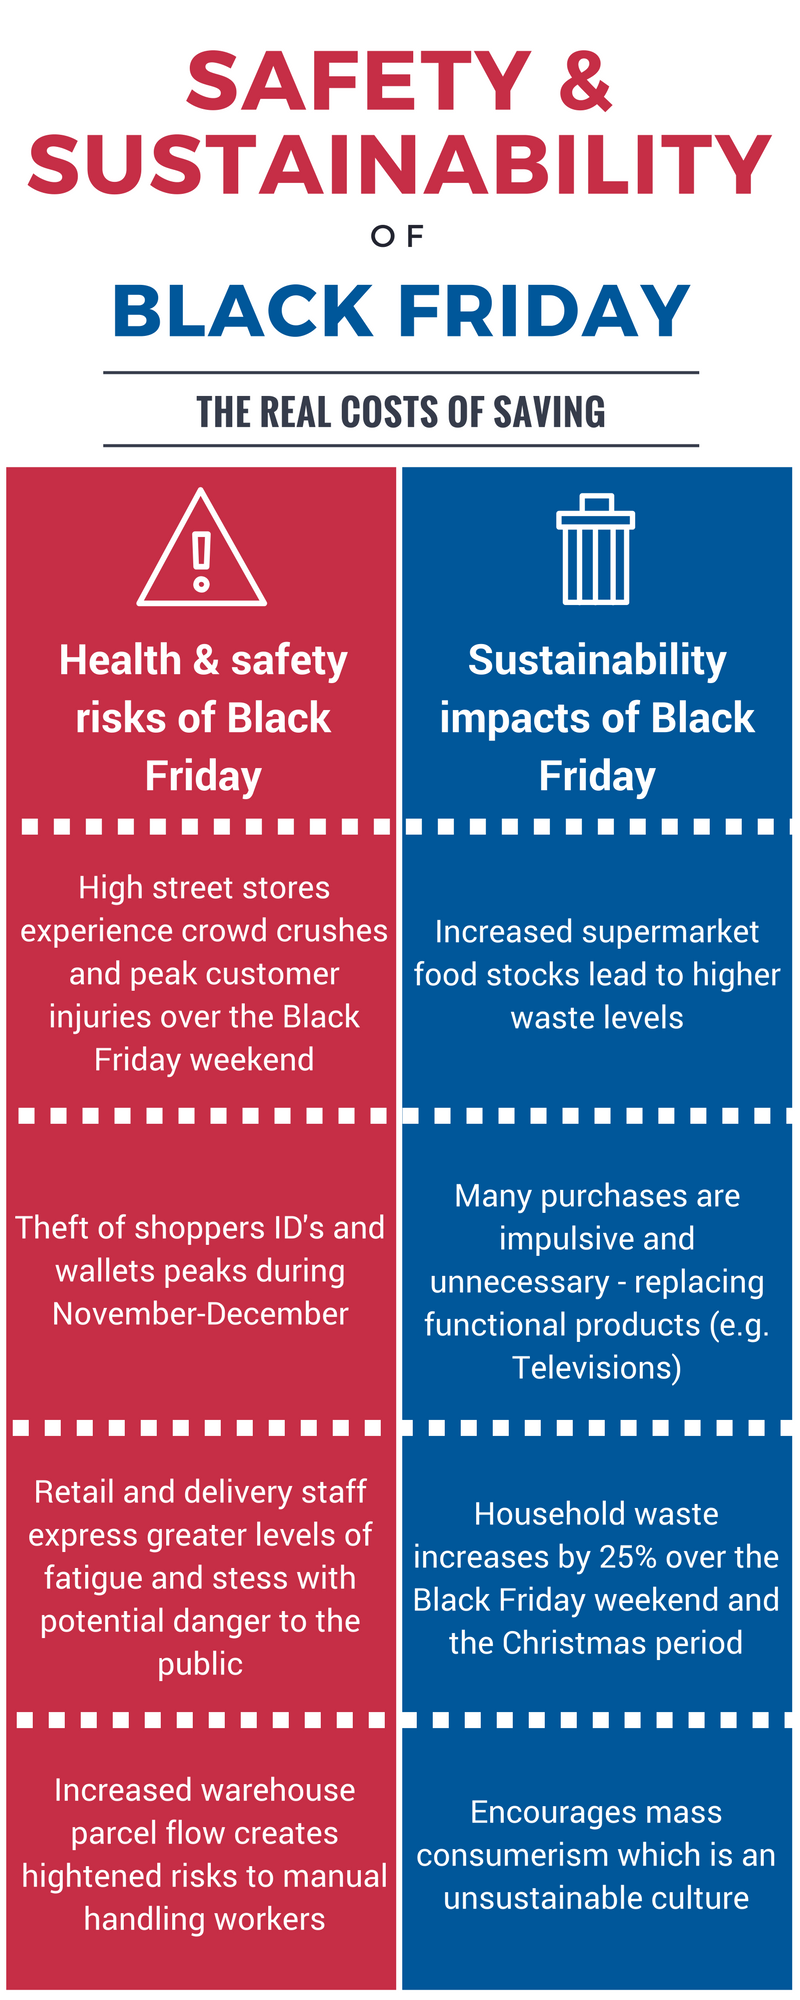 black friday safety and sustainability infographic